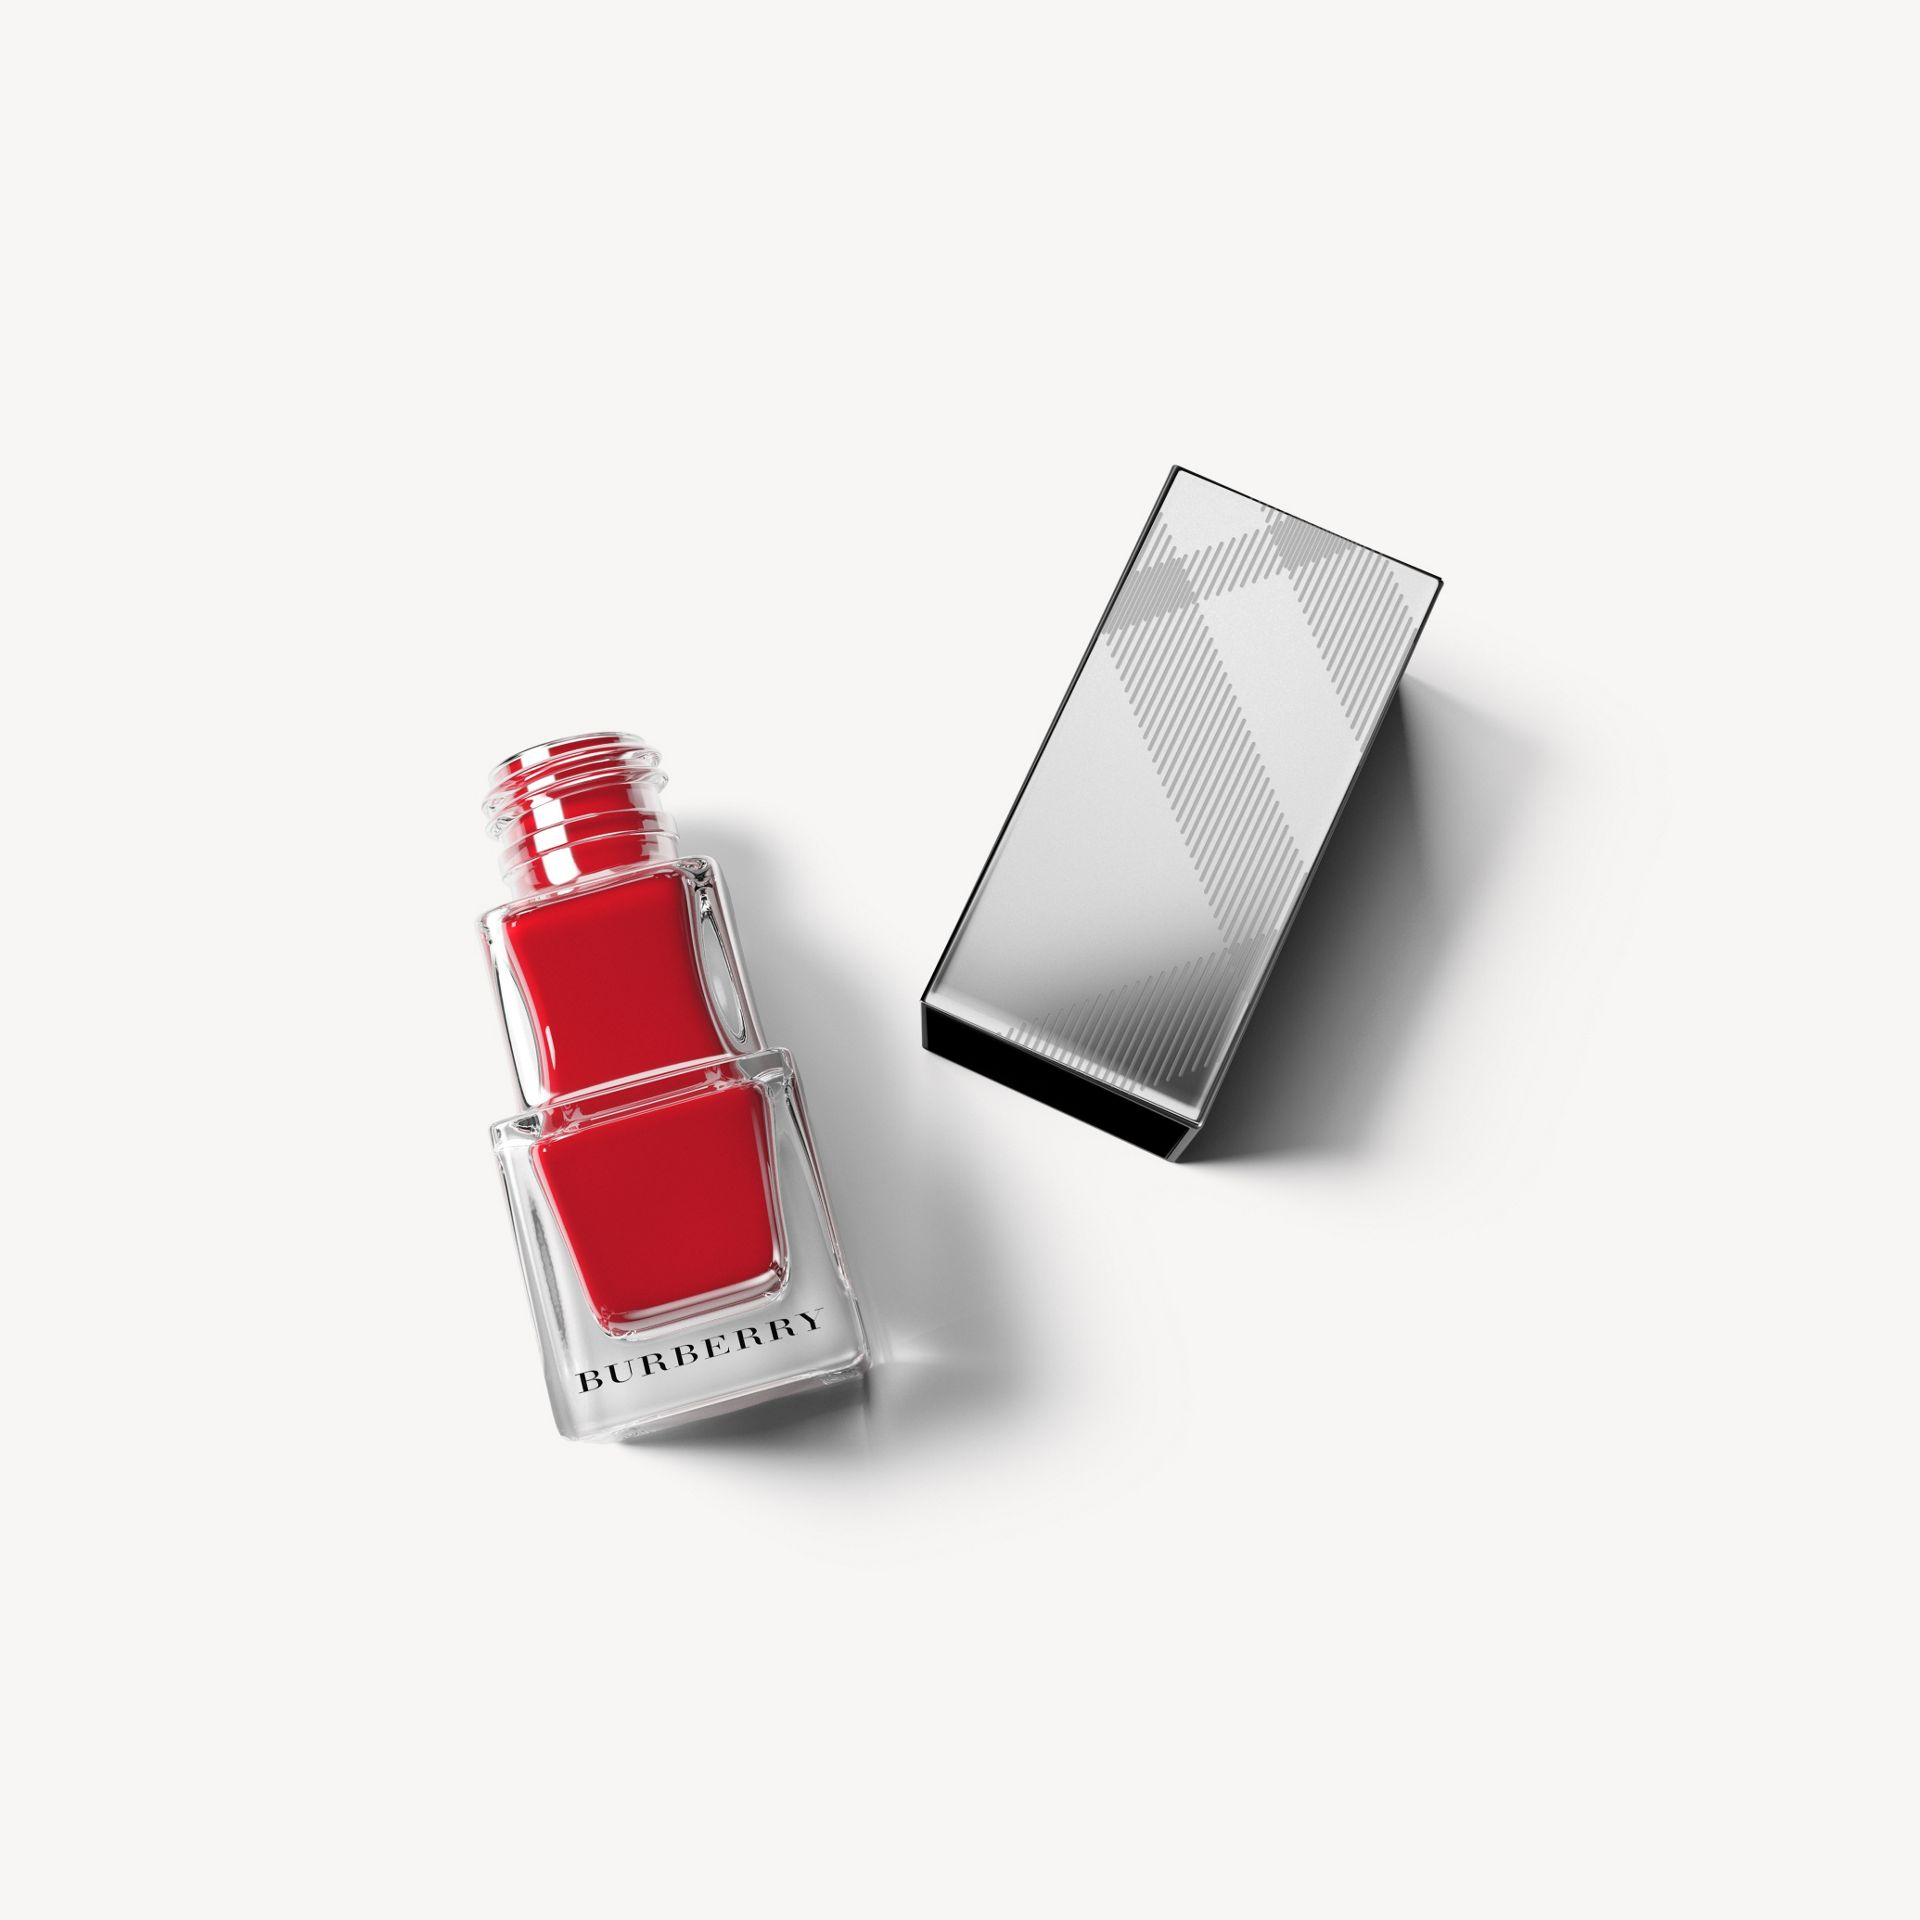 Military red 300 Nail Polish – Military Red No.300  - Galerie-Bild 1